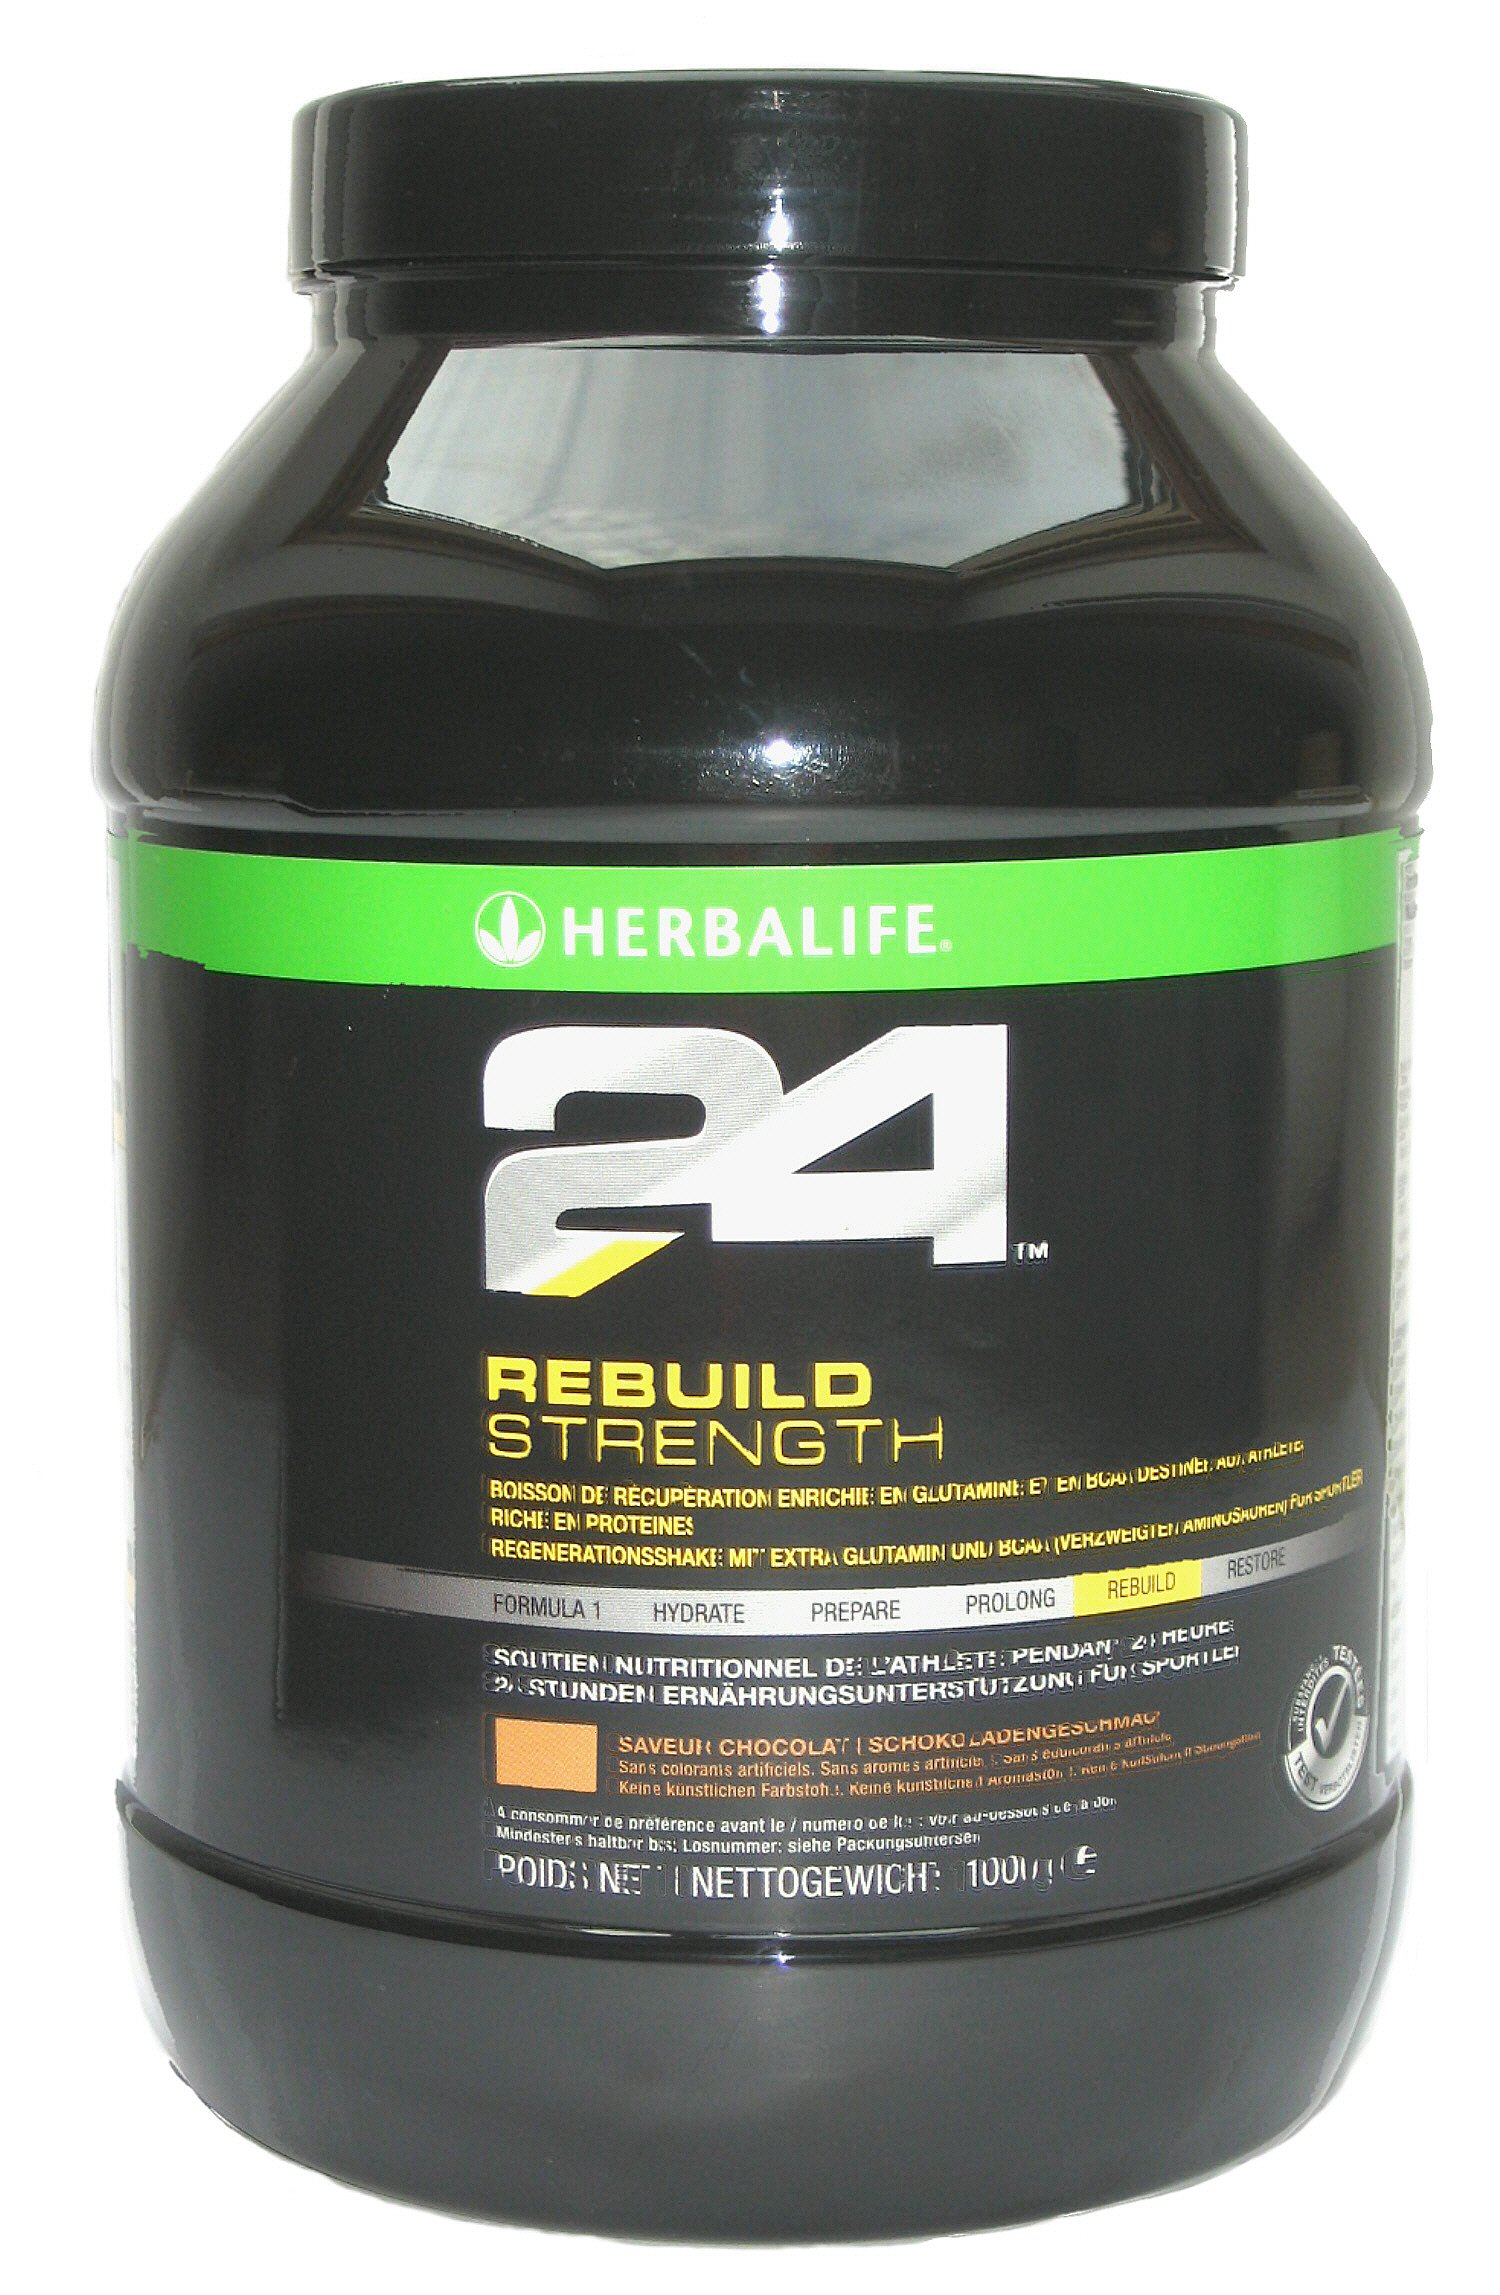 Herbalife 24 Rebuild Strength (Chocolate 35.6oz Canister)